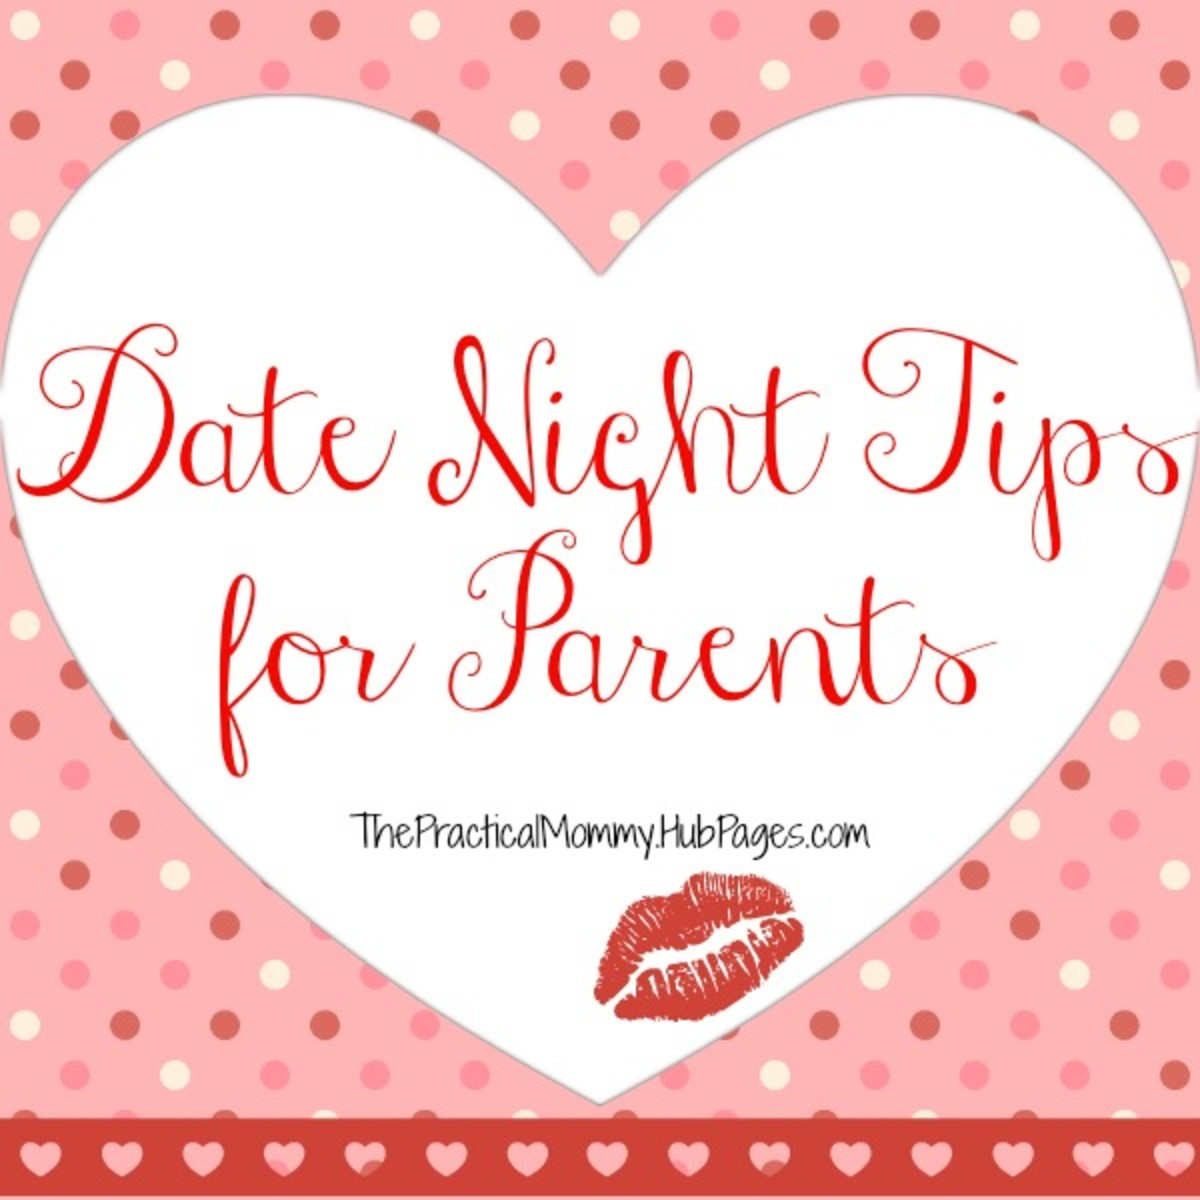 How to Prepare for Date Night Without the Kids